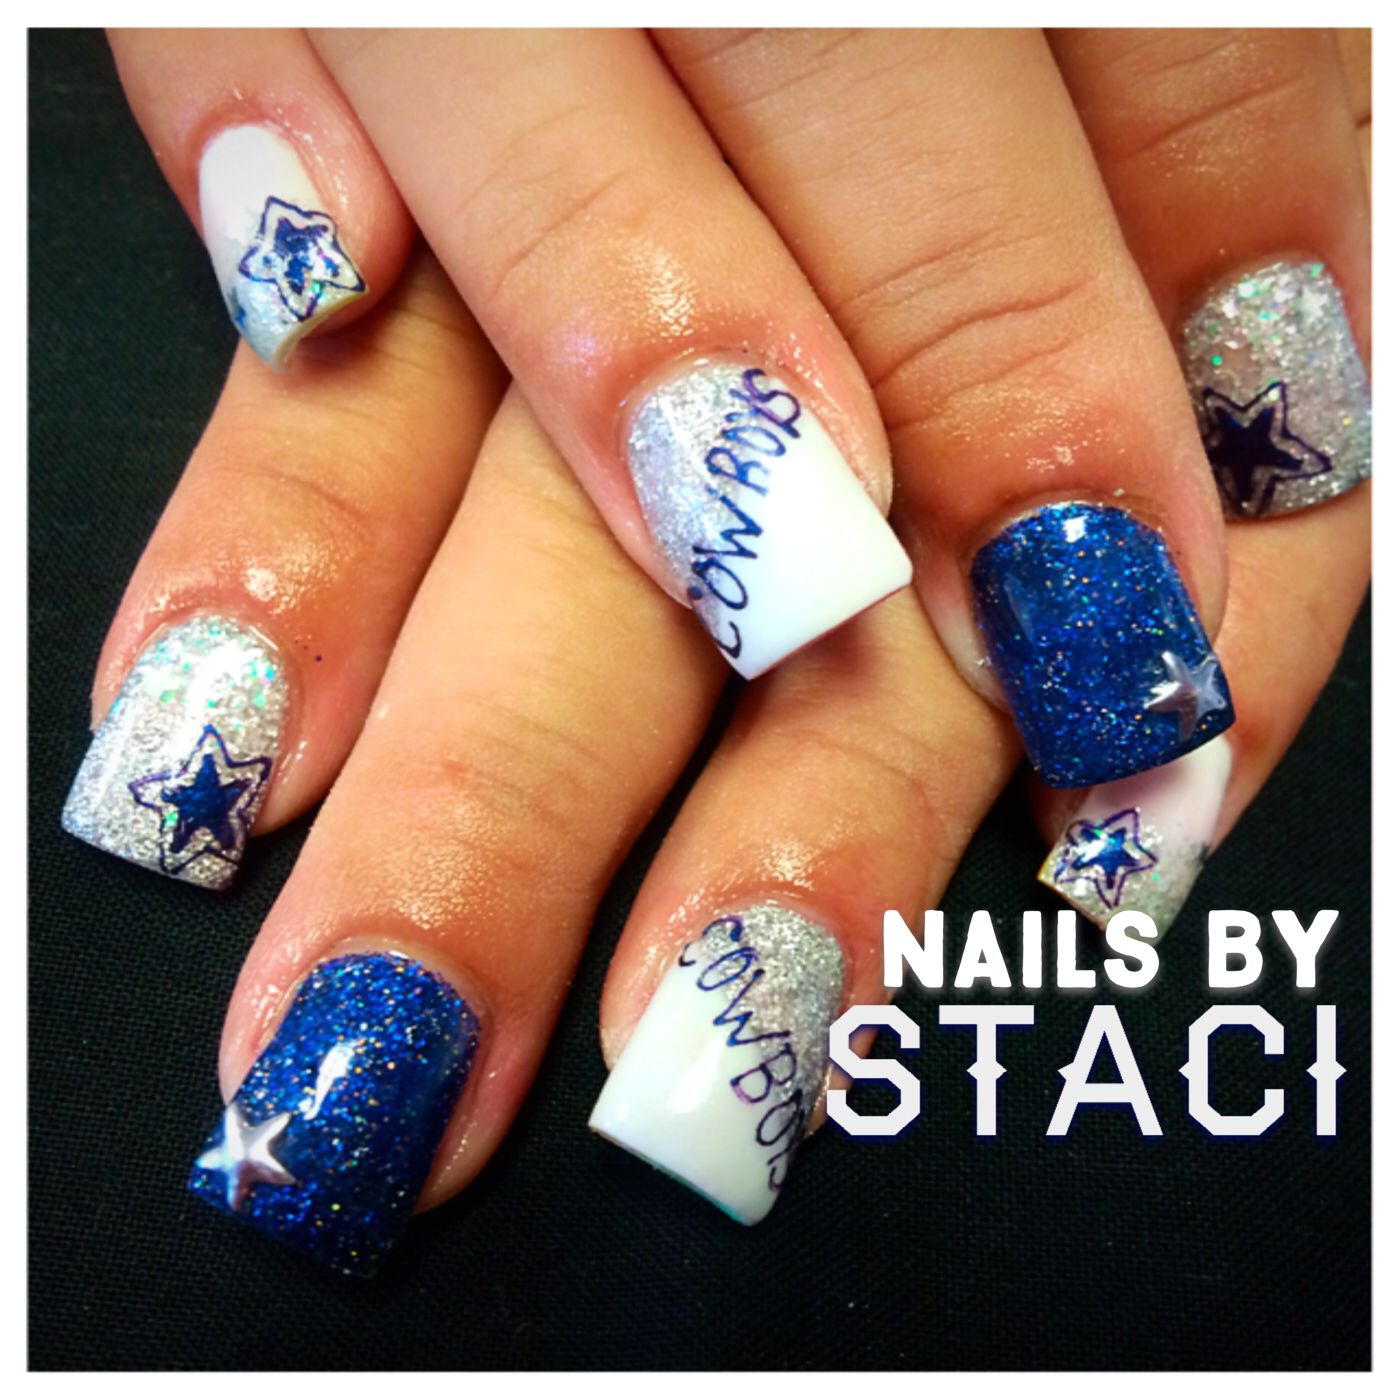 Dallas cowboy nails | Staci\'s Nail Artistry | Pinterest | Dallas ...